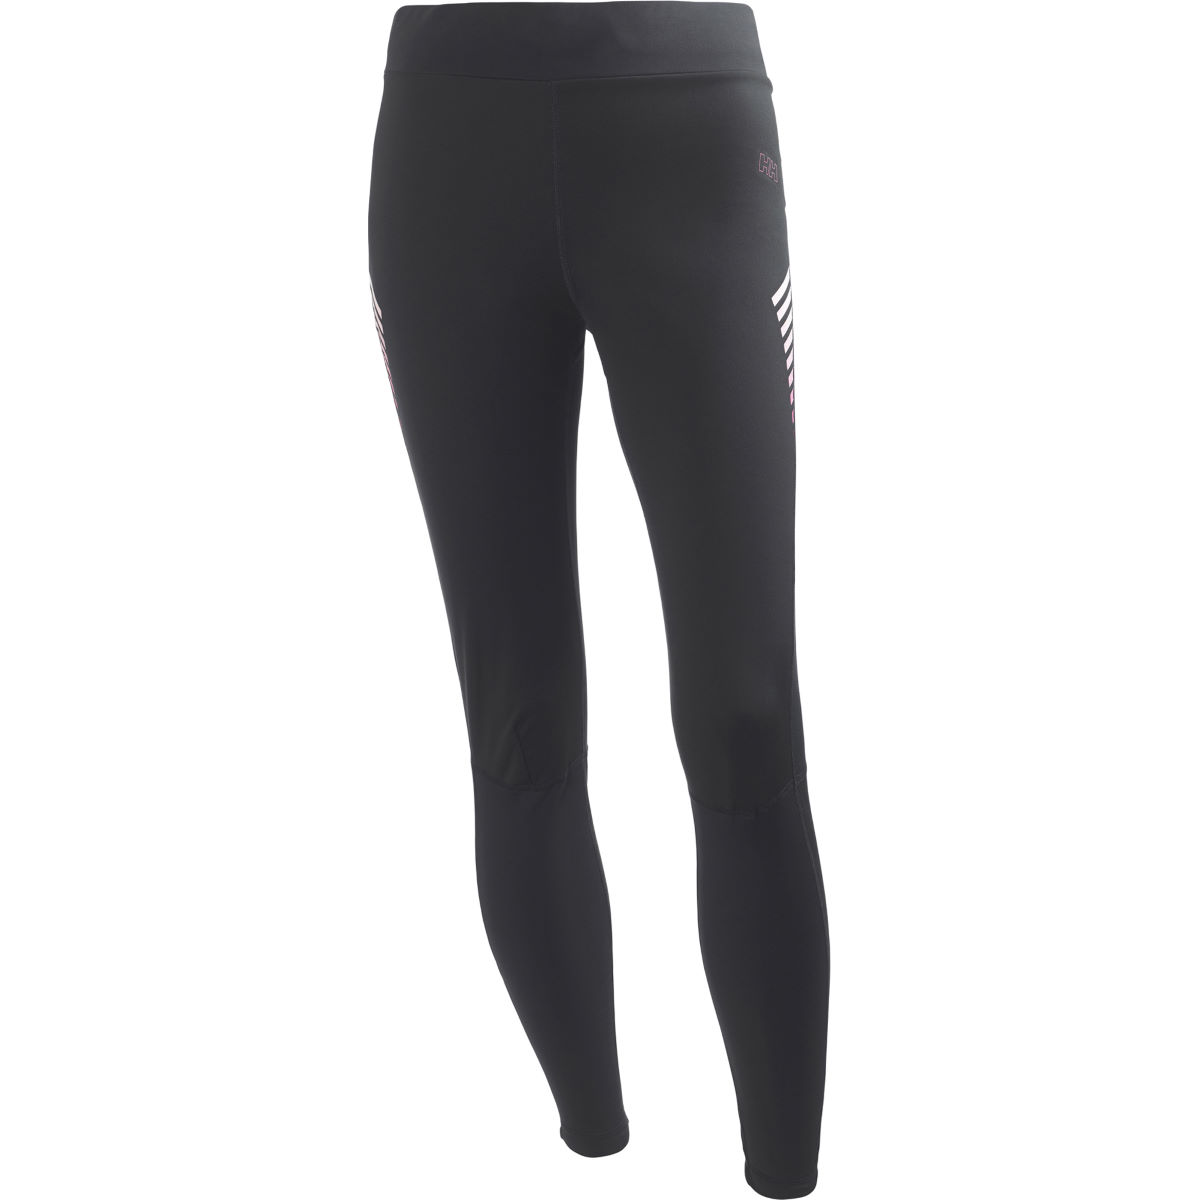 Helly Hansen Women's Charger Windblock Tights 2 - AW14